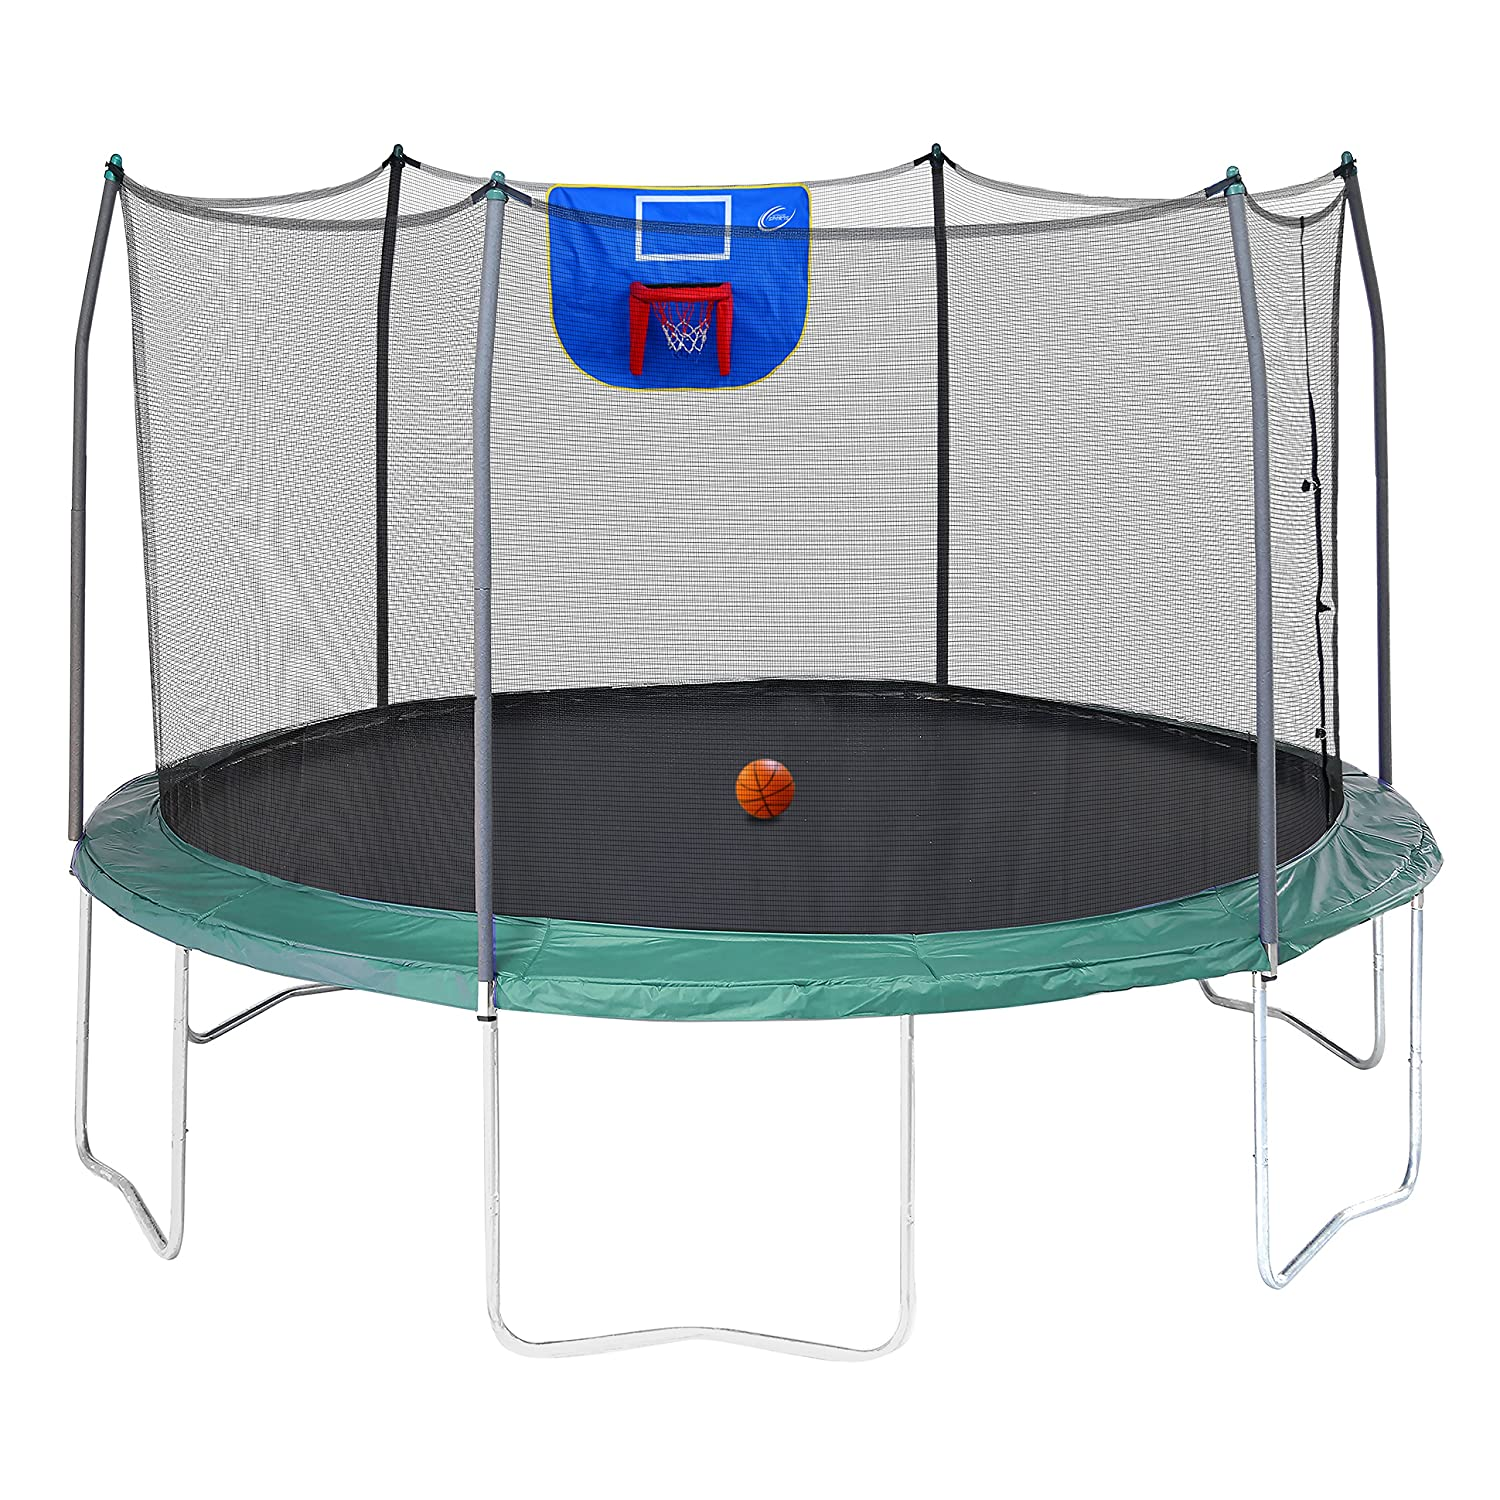 5 Best Skywalker Trampoline Reviews 2019 Top Picks And